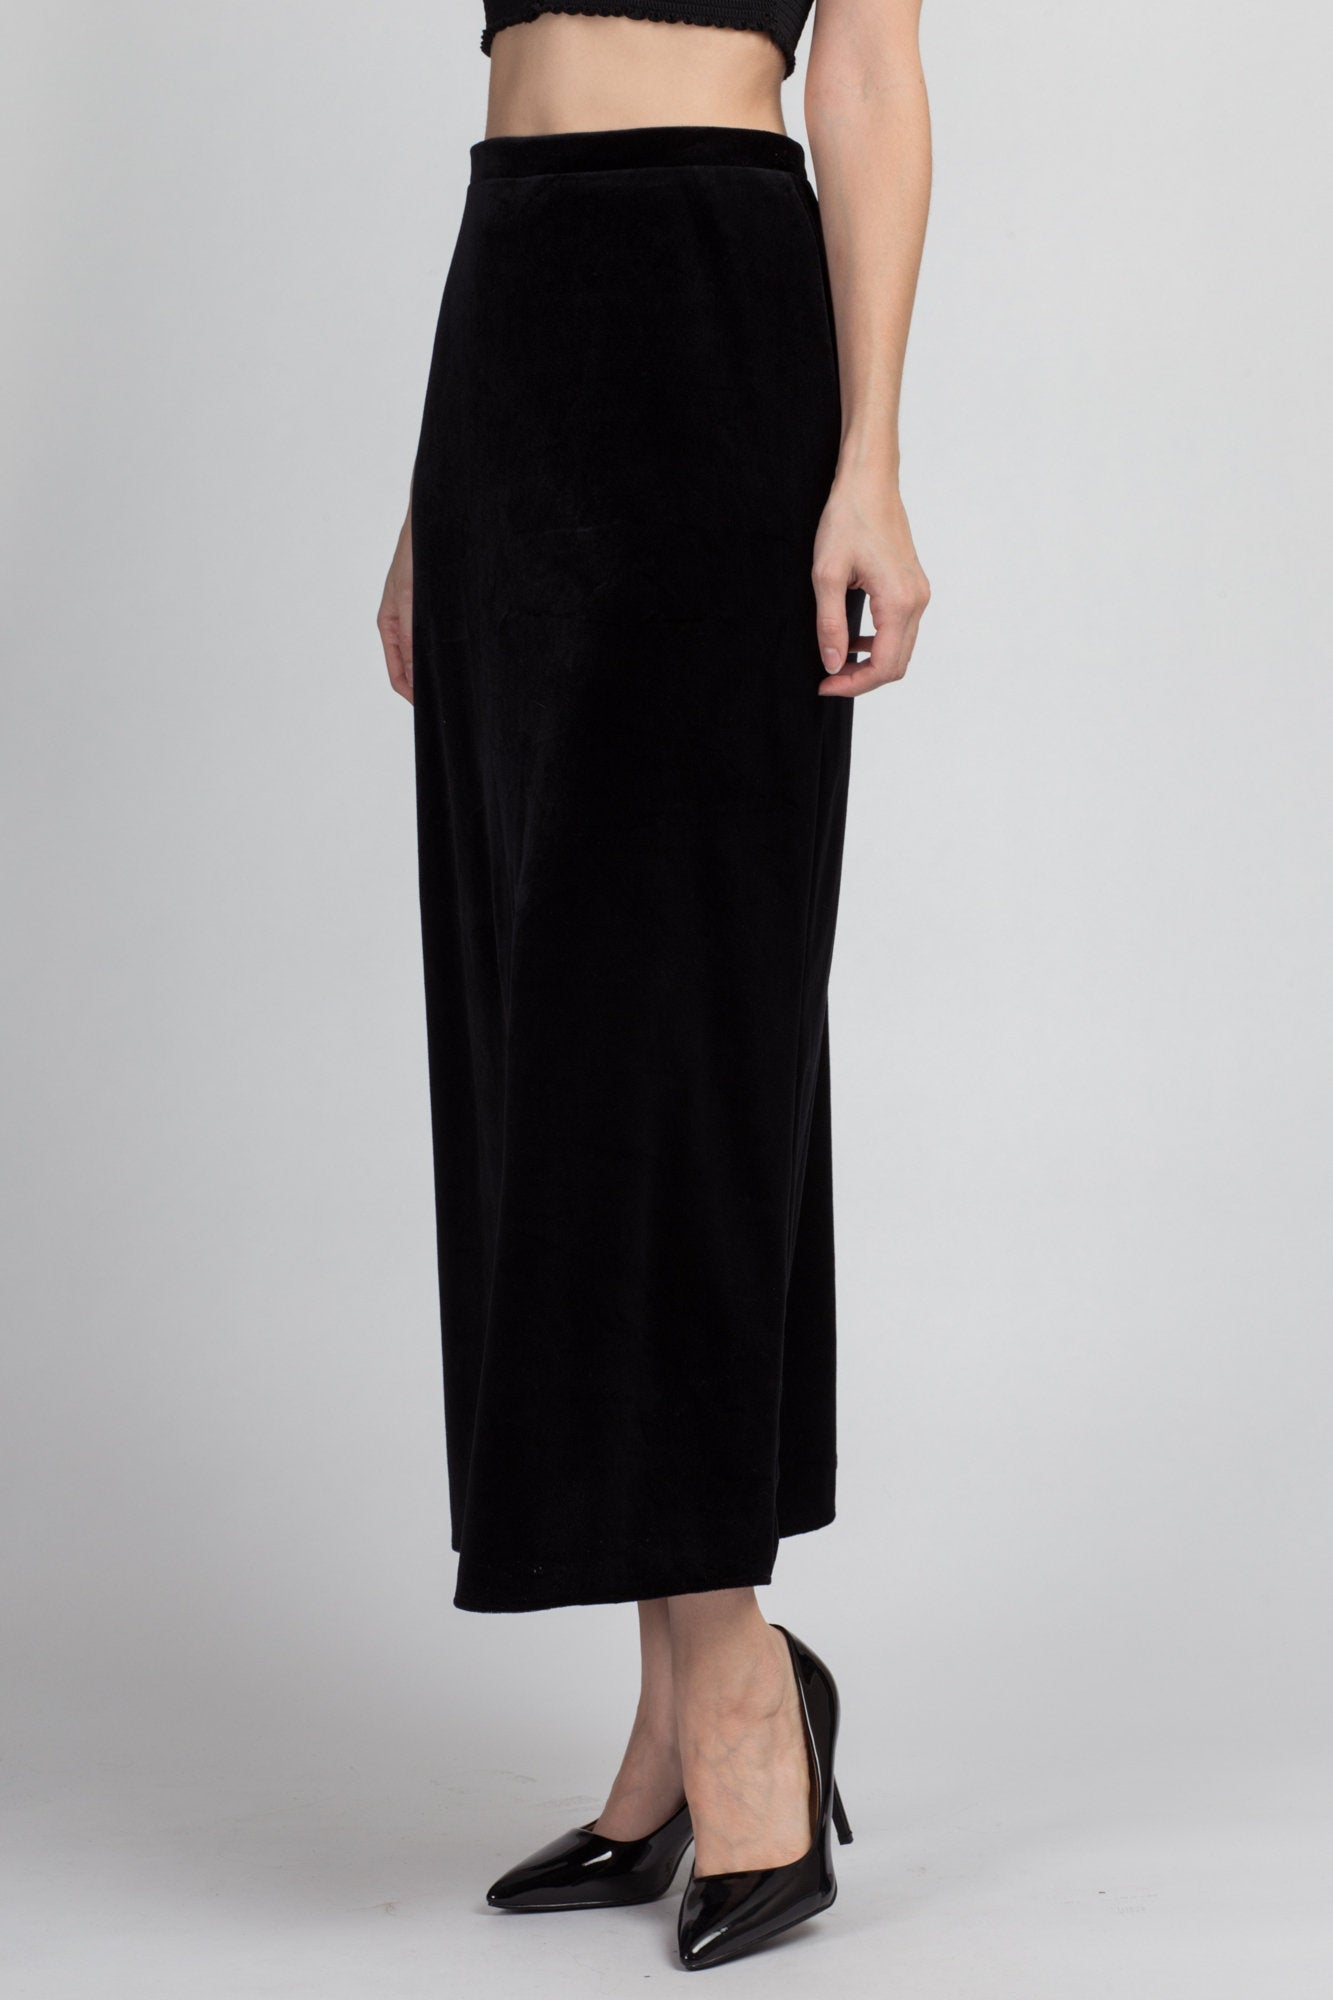 90s Black Velvet Maxi Skirt - Small